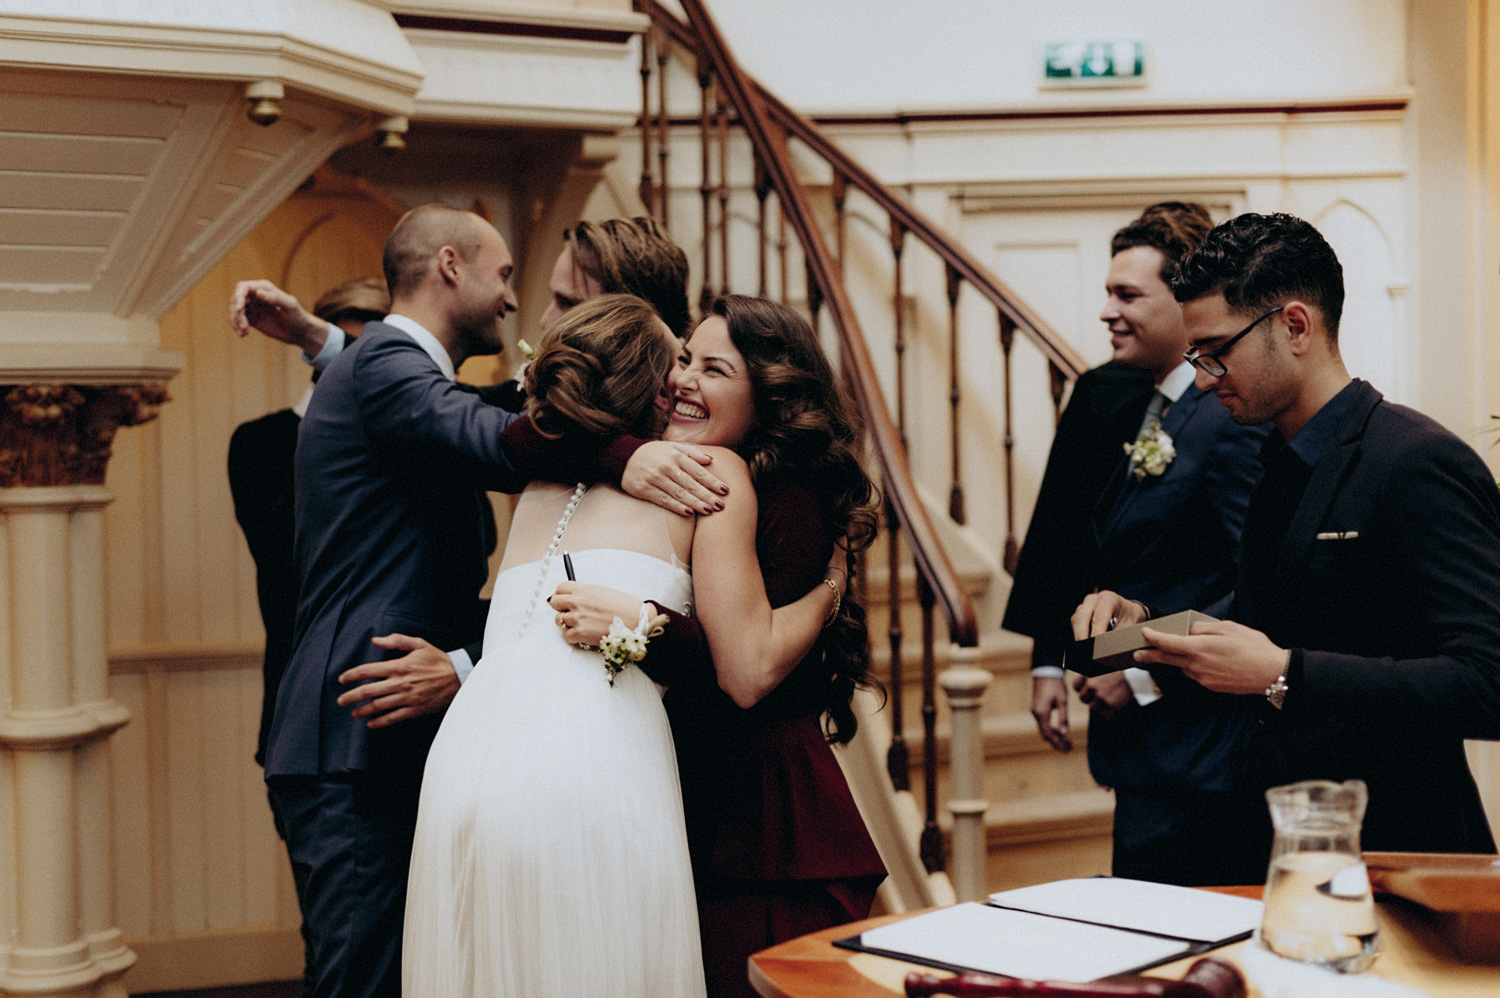 Friends of bride and groom hugging couple